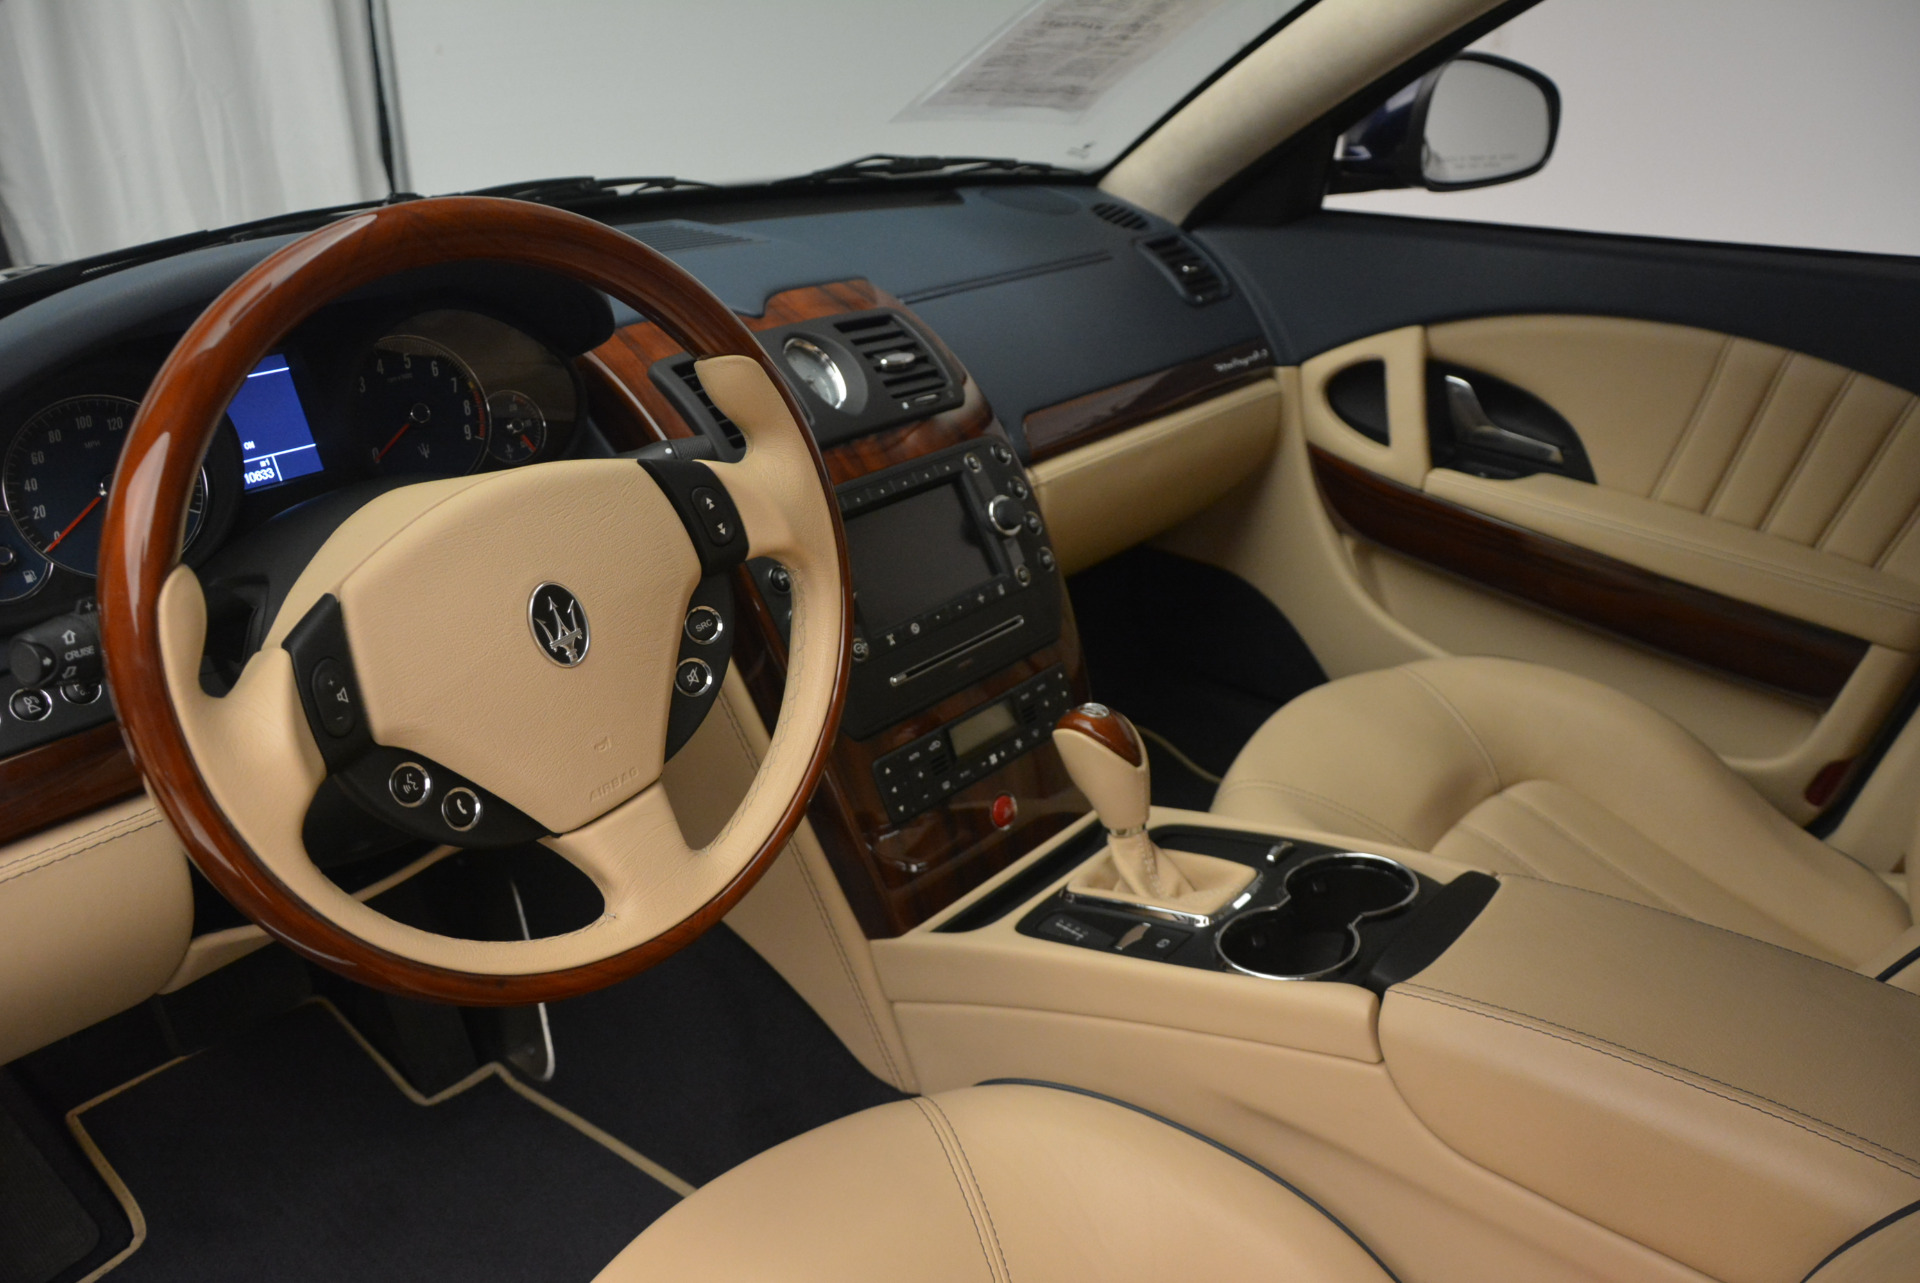 Used 2010 Maserati Quattroporte S For Sale In Westport, CT 795_p15